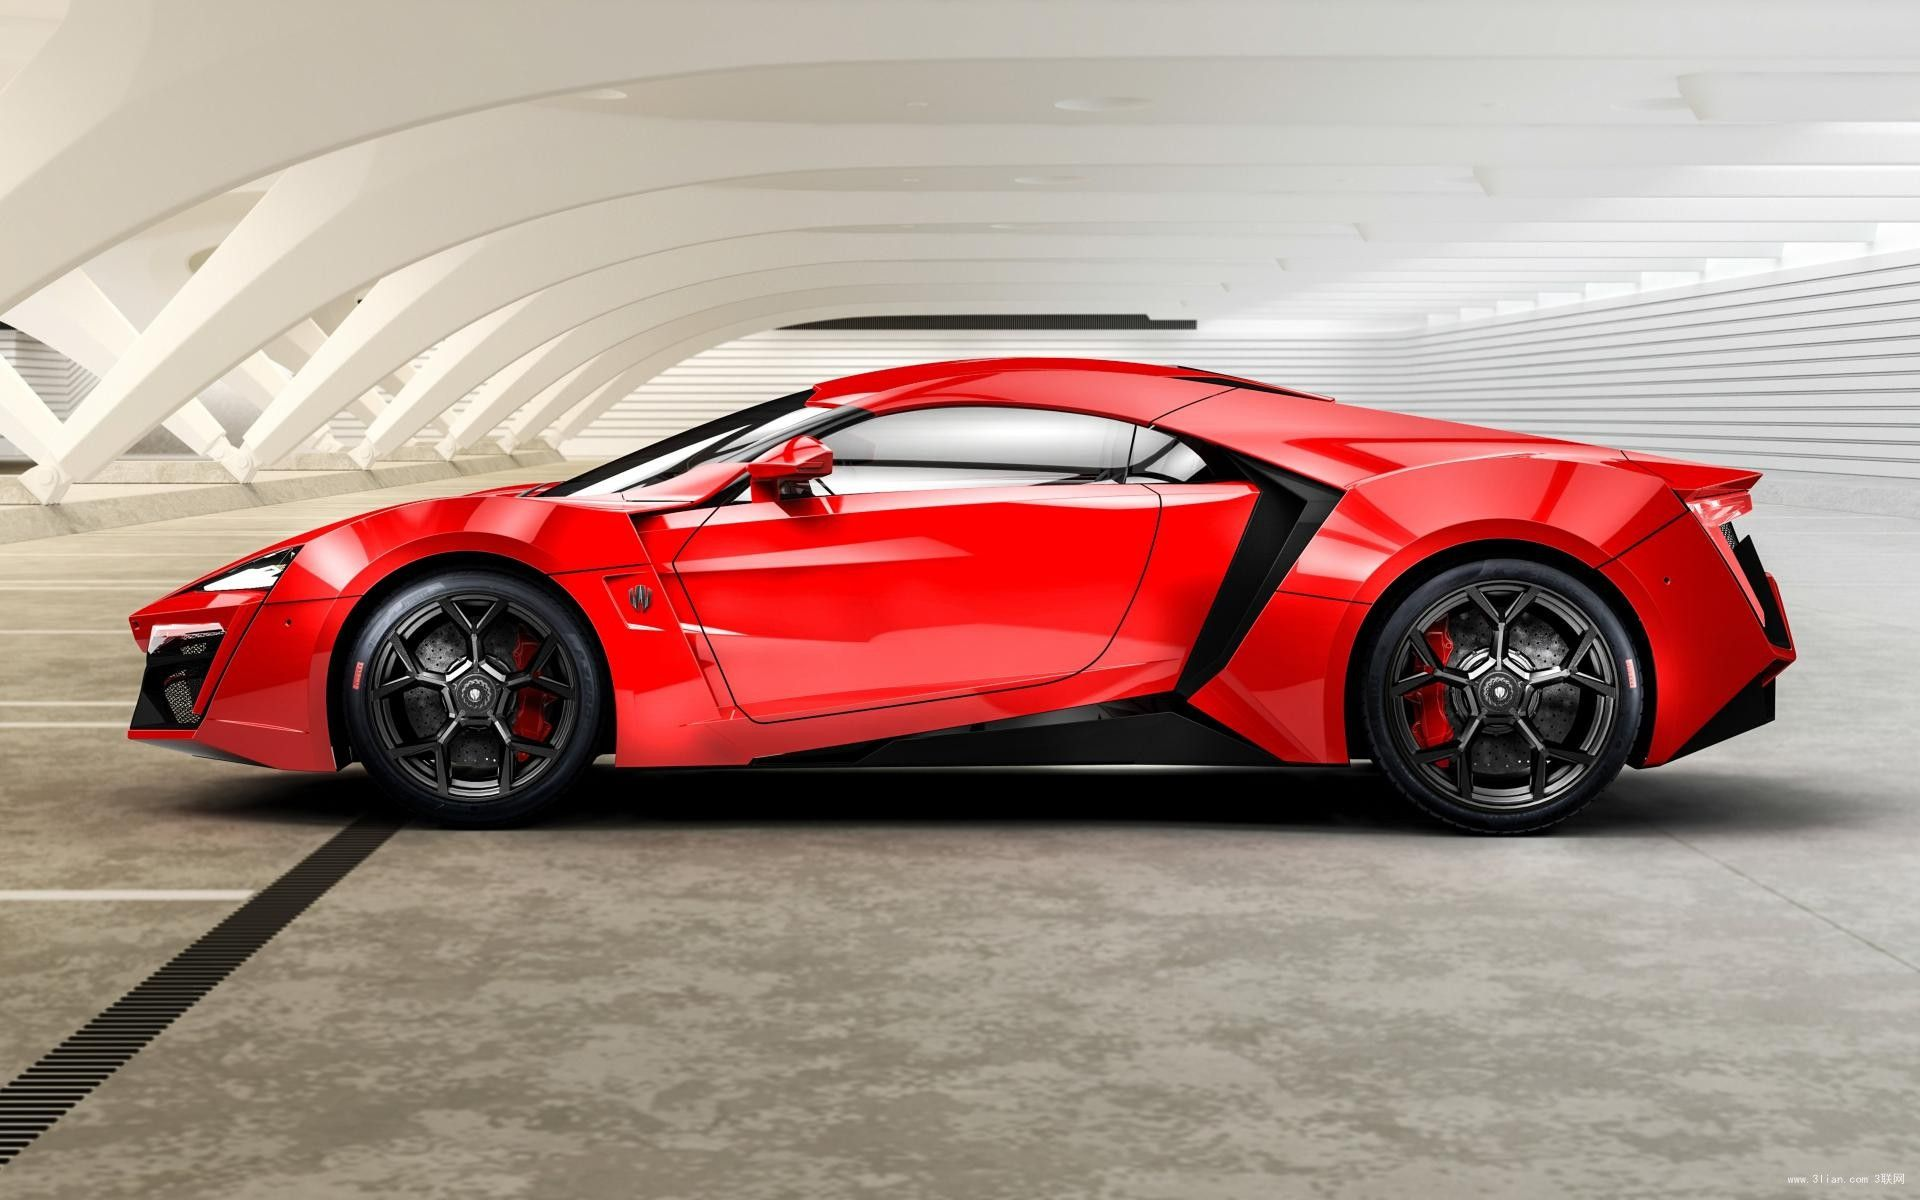 Pin By Diane Mckenna On Get Cha Motor Running Lykan Hypersport Super Luxury Cars Super Sport Cars